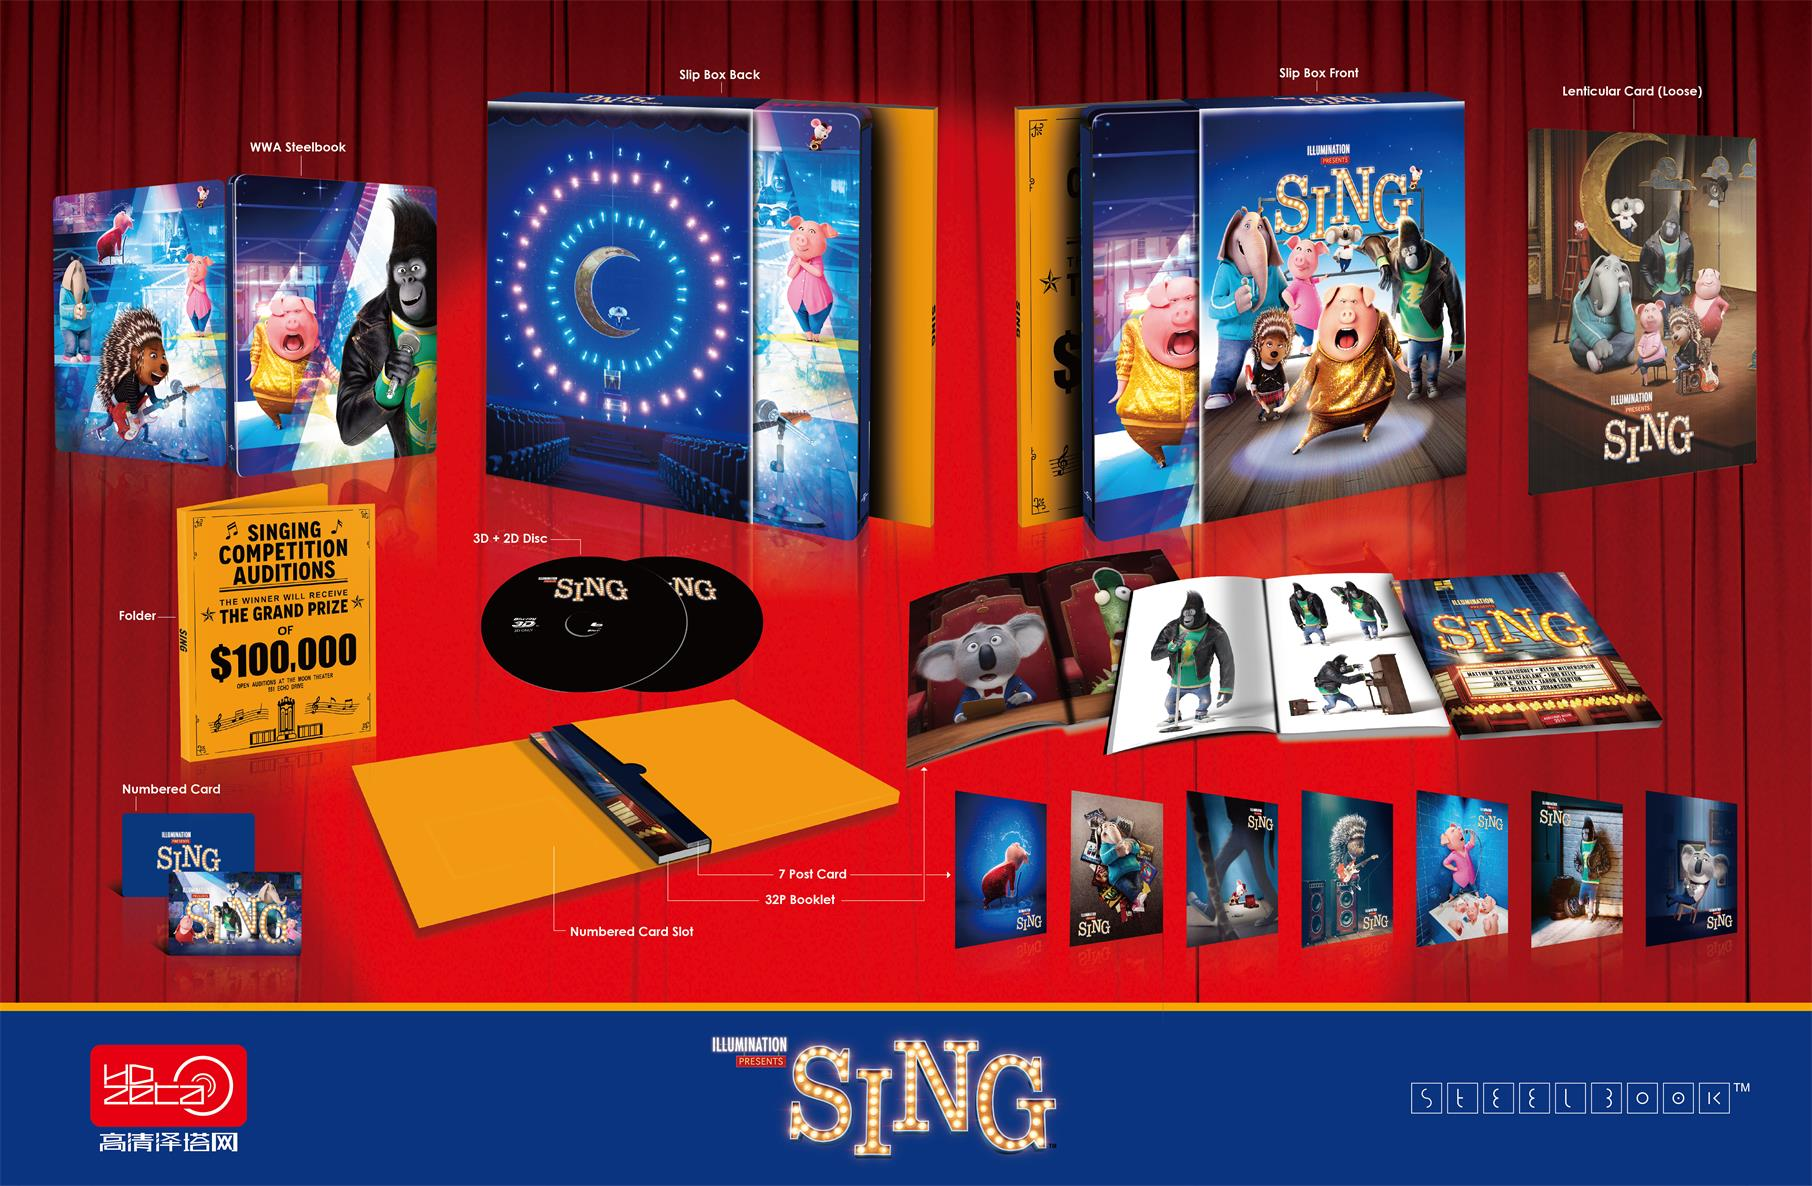 SING/シング LIFE HDzeta Silver Label Special Edition スチールブック steelbook